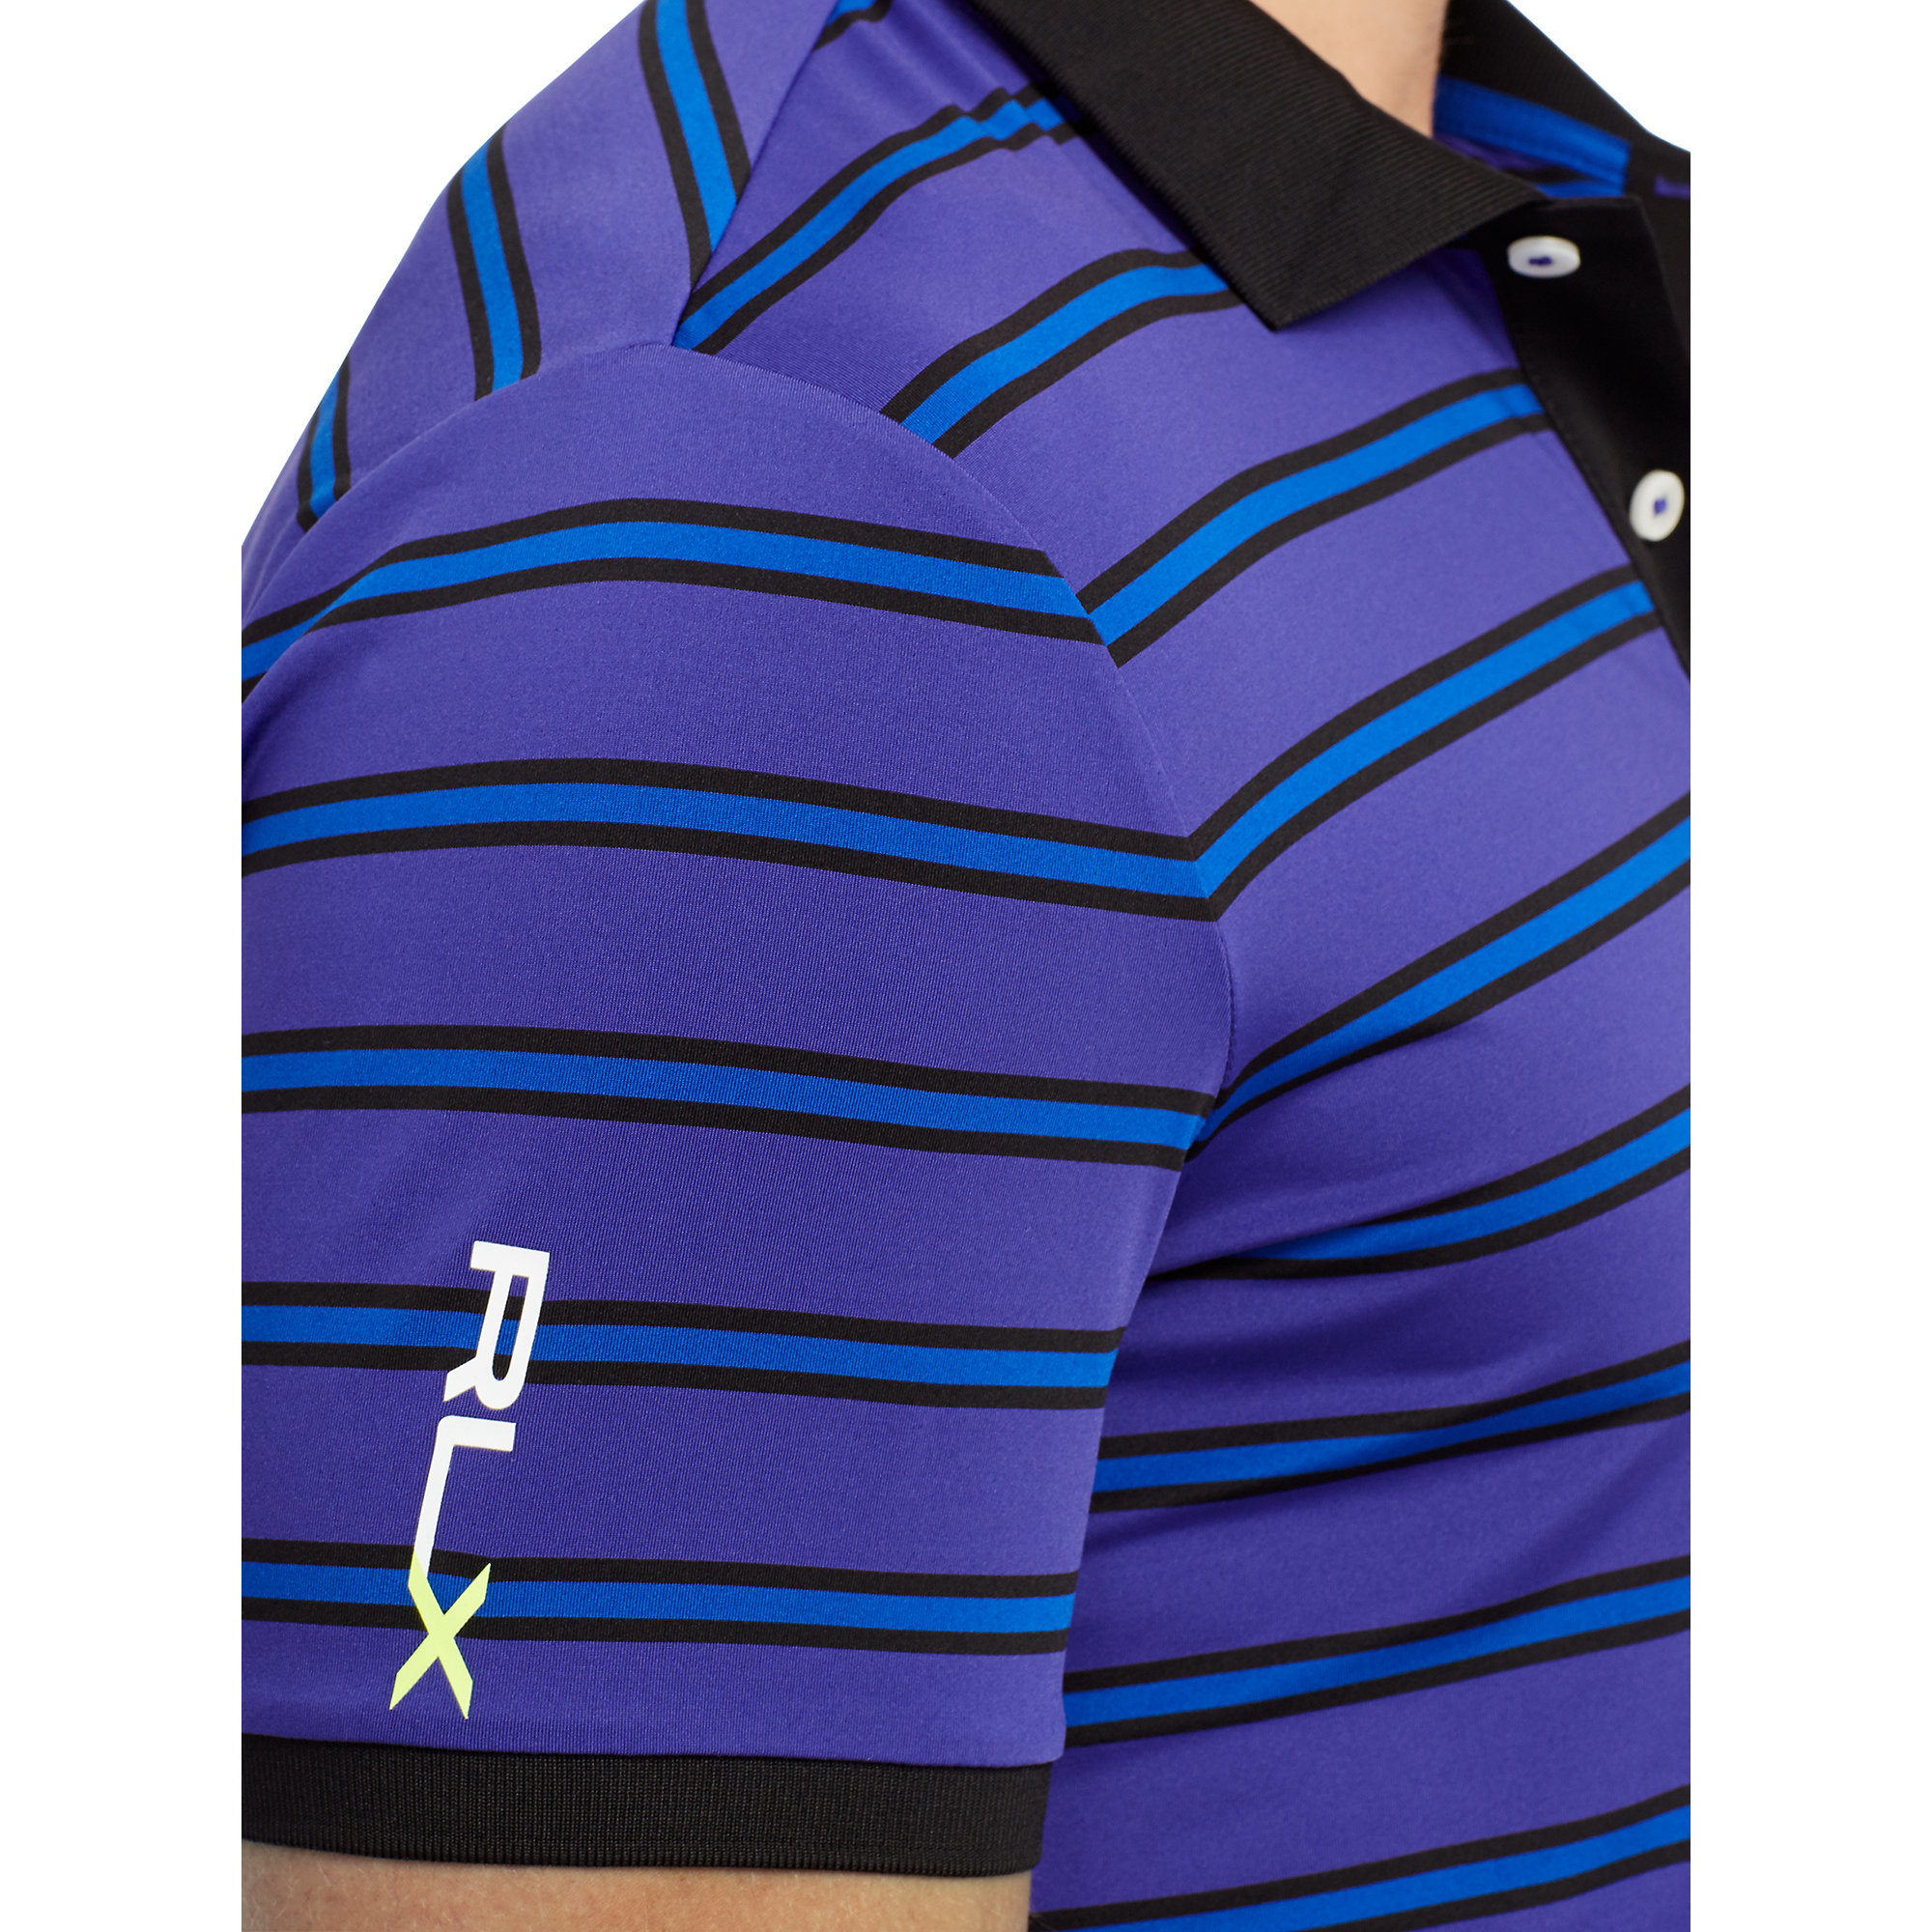 Ralph lauren slim fit striped polo shirt in purple for men for Purple and black striped t shirt